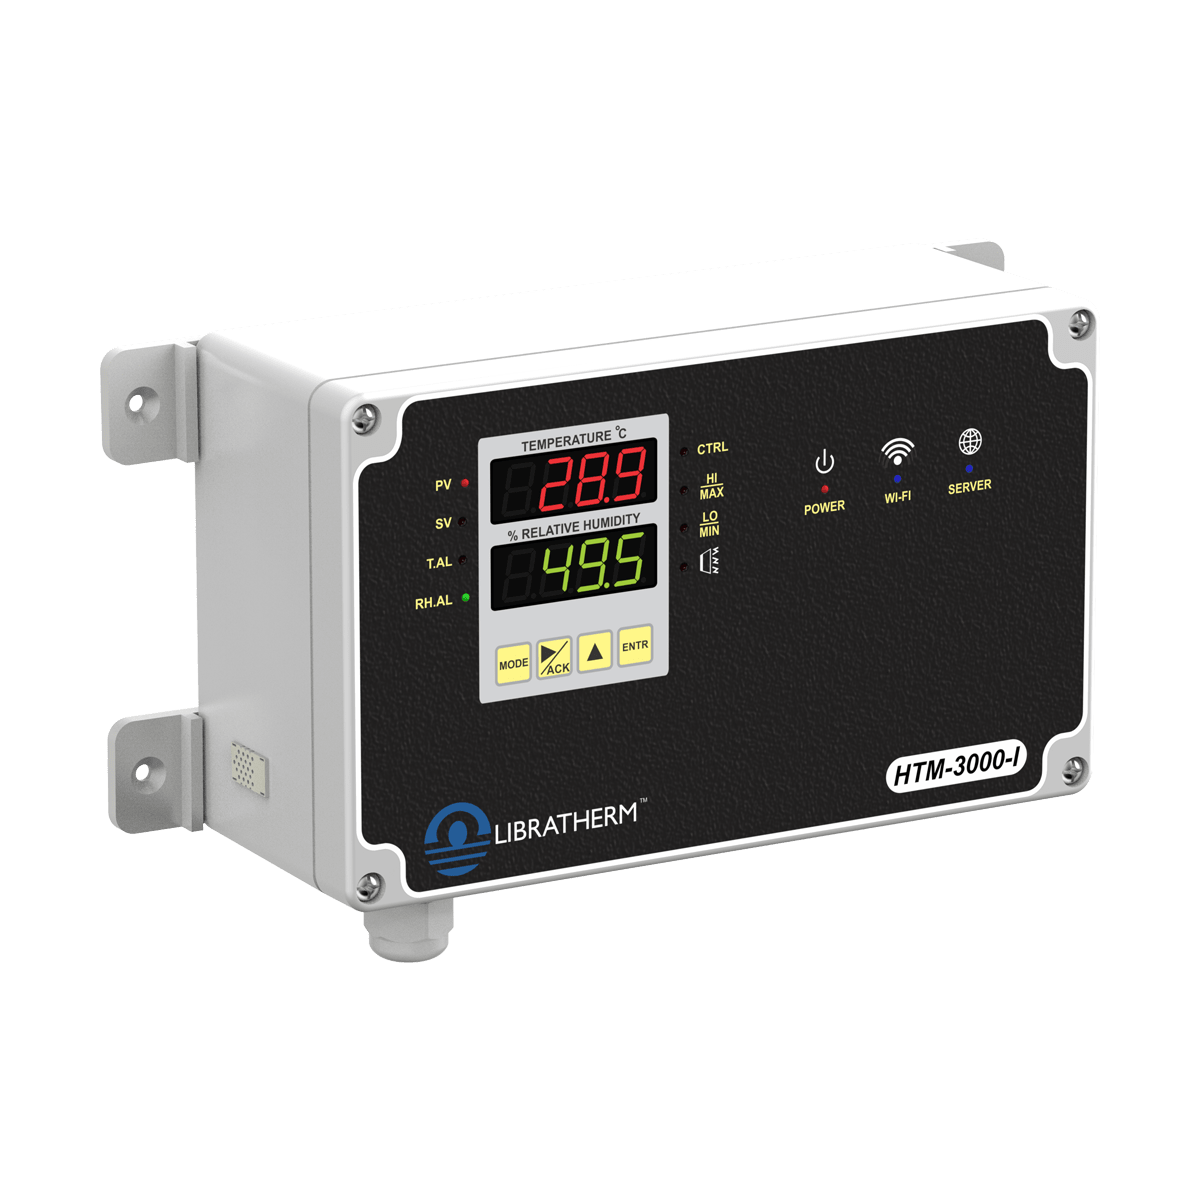 temperature-and-humidity-digital-indicator-with-wi-fi-htm-3000-i-right